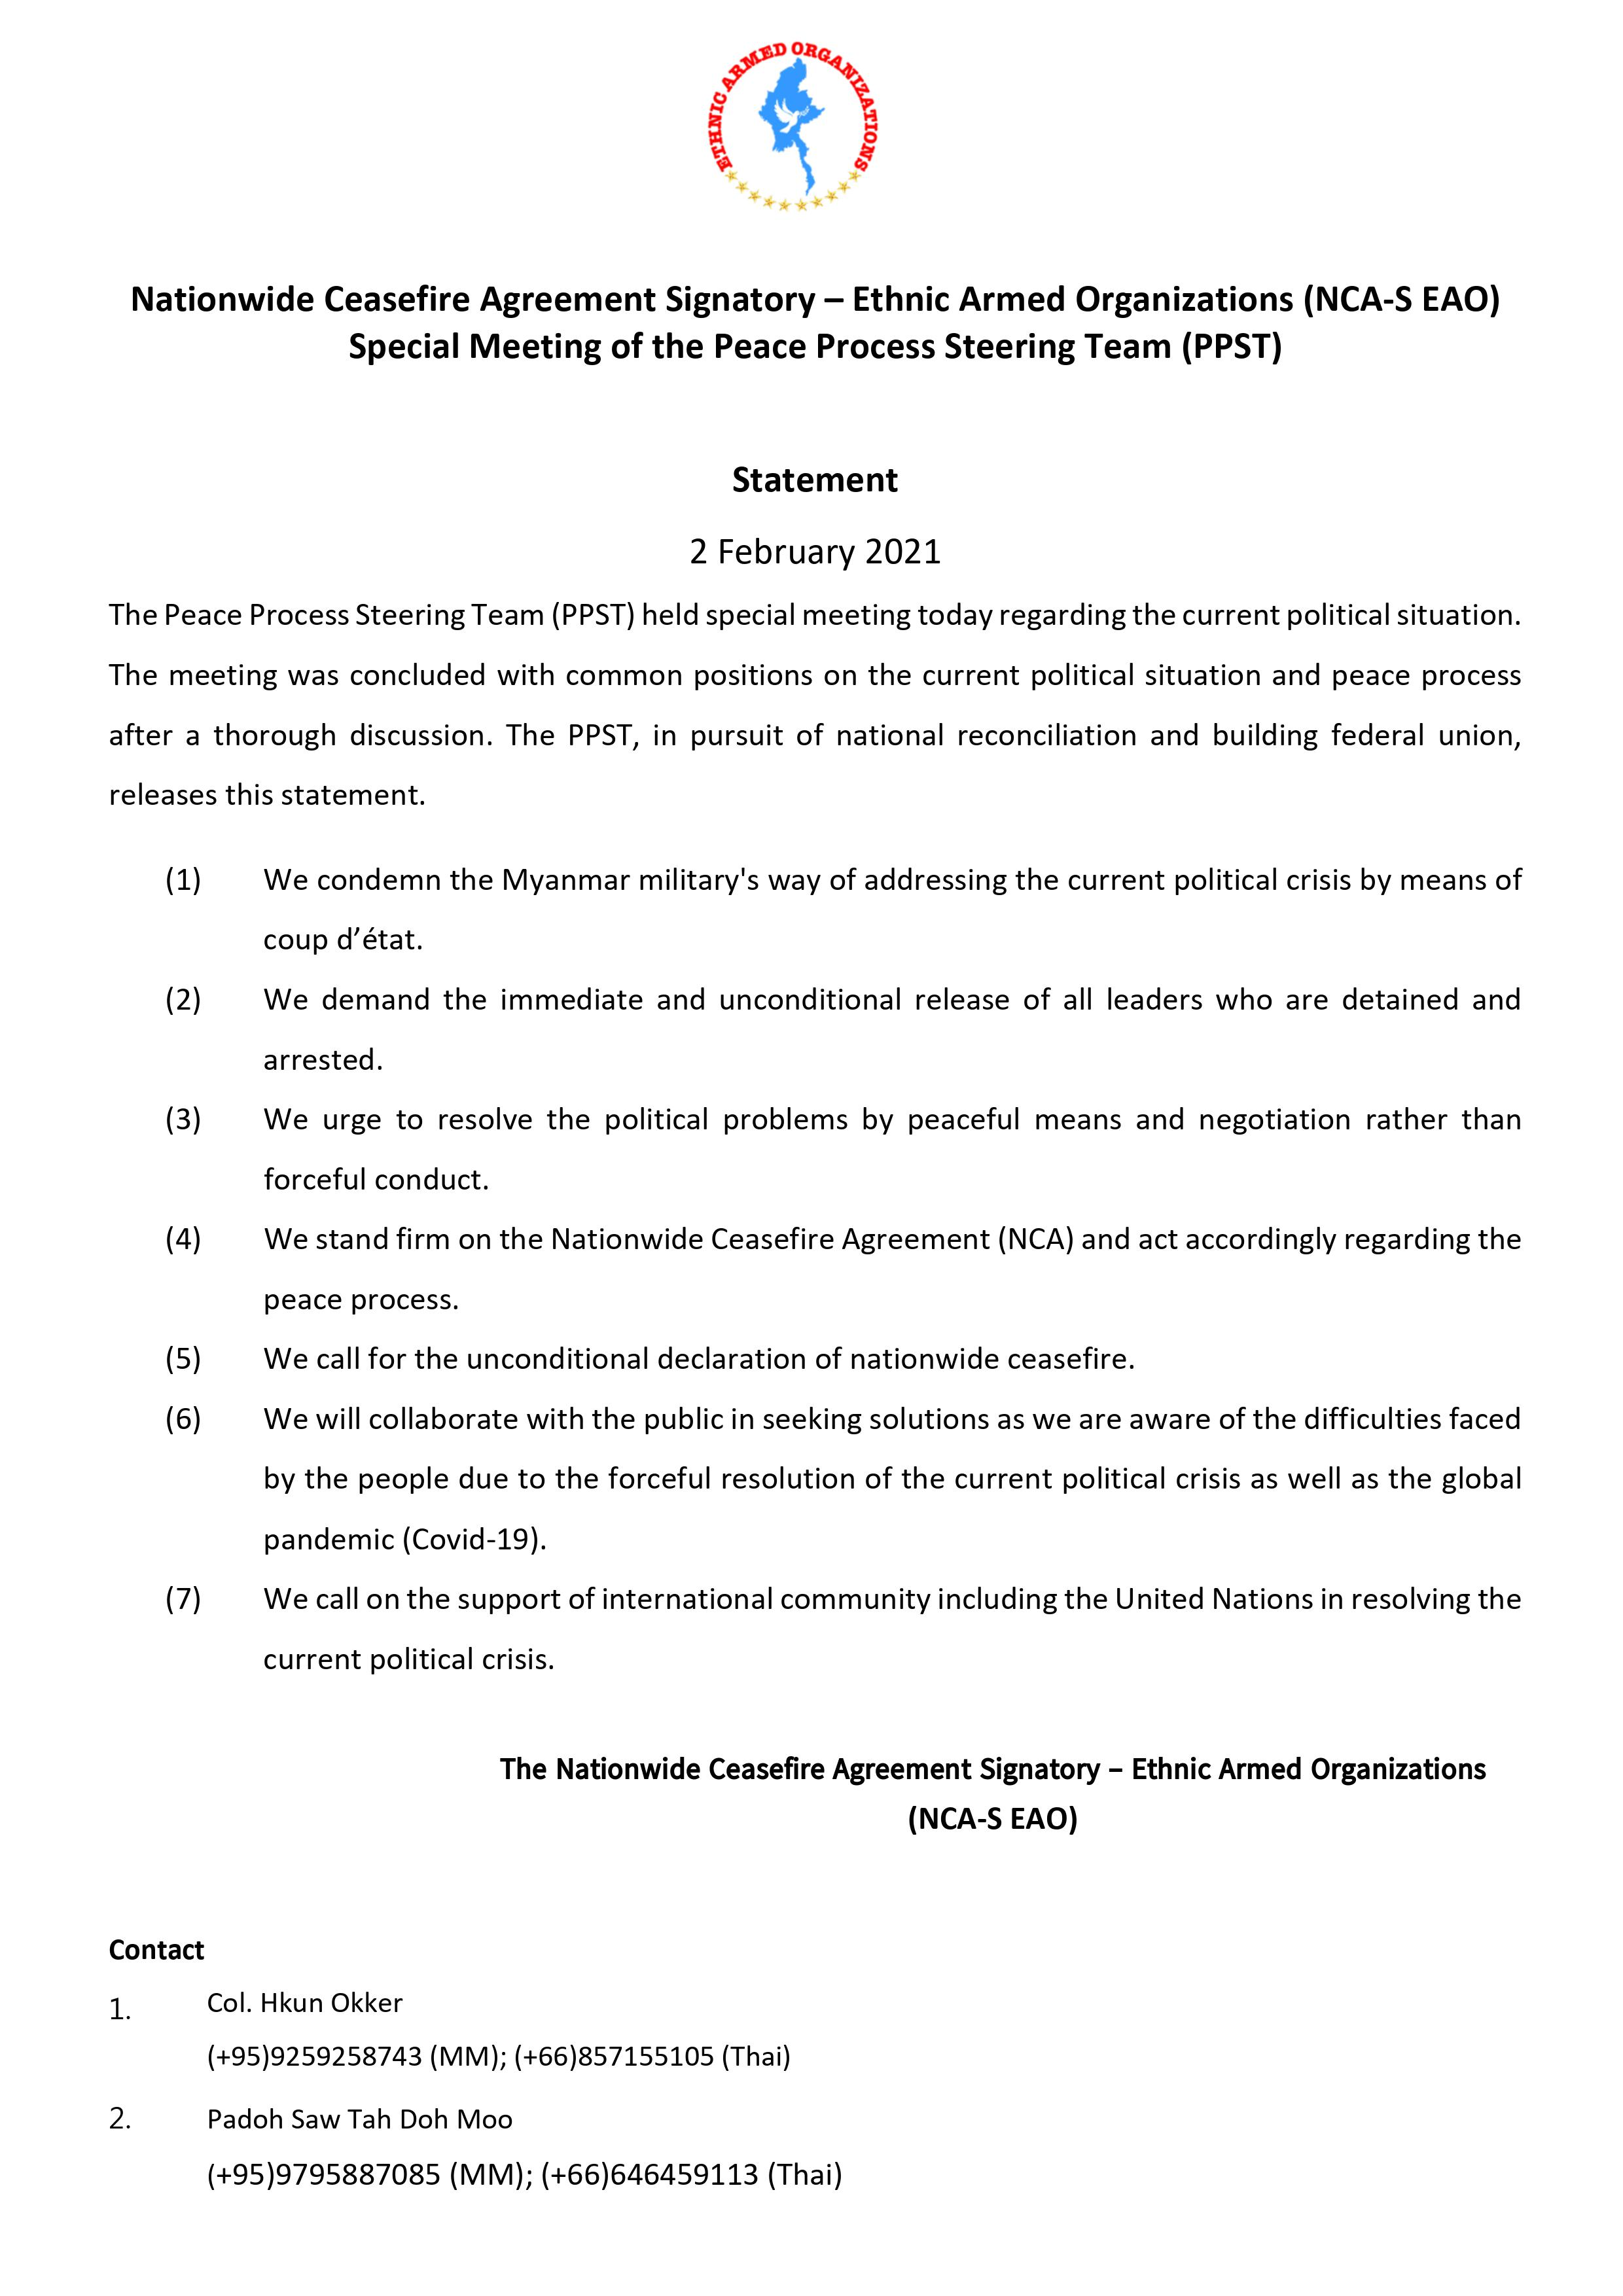 The Statement of Special Meeting of the Peace Process Steering Team (PPST)